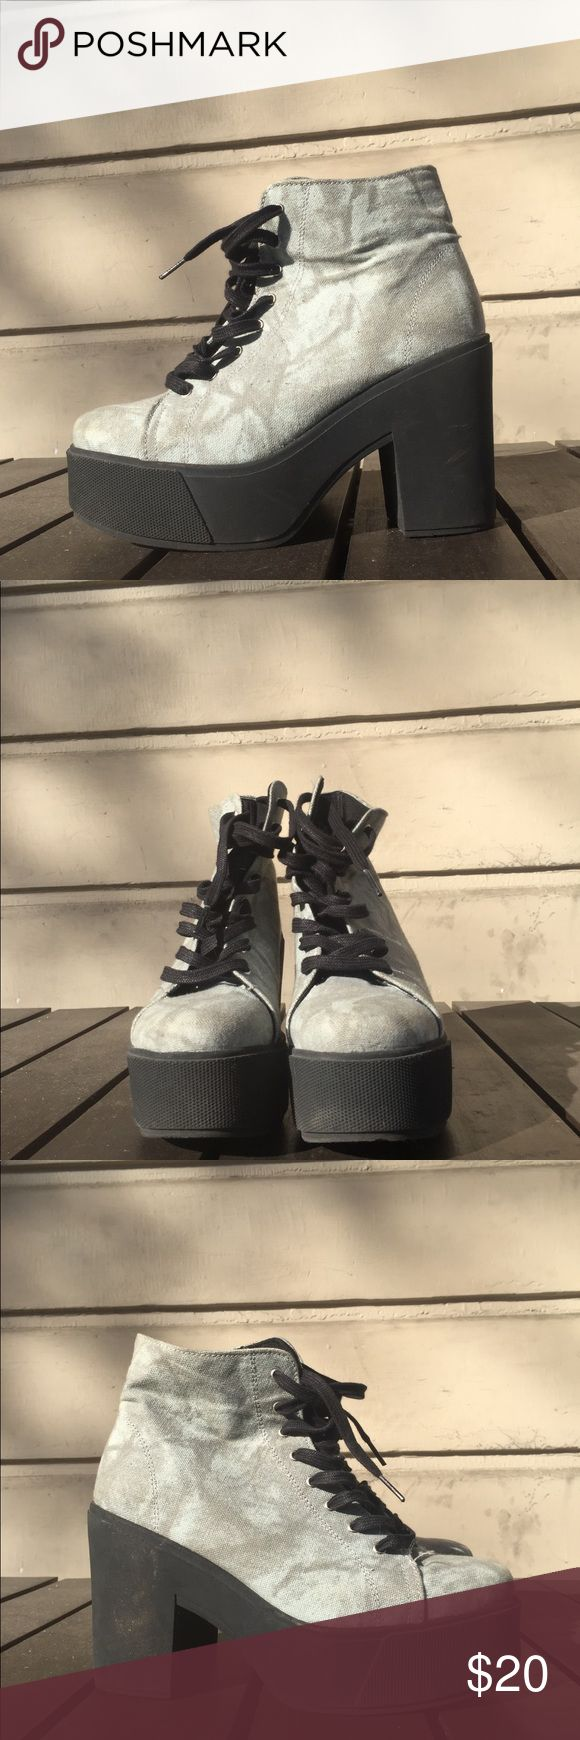 Gray Outsider platform boots! Grey textured platform boots by Outsider. I LOOOVE THESE! They're super comfy and give me spice girl vibes. Worn only once! Size 9 made in Spain! outsiders by 67 Shoes Heeled Boots